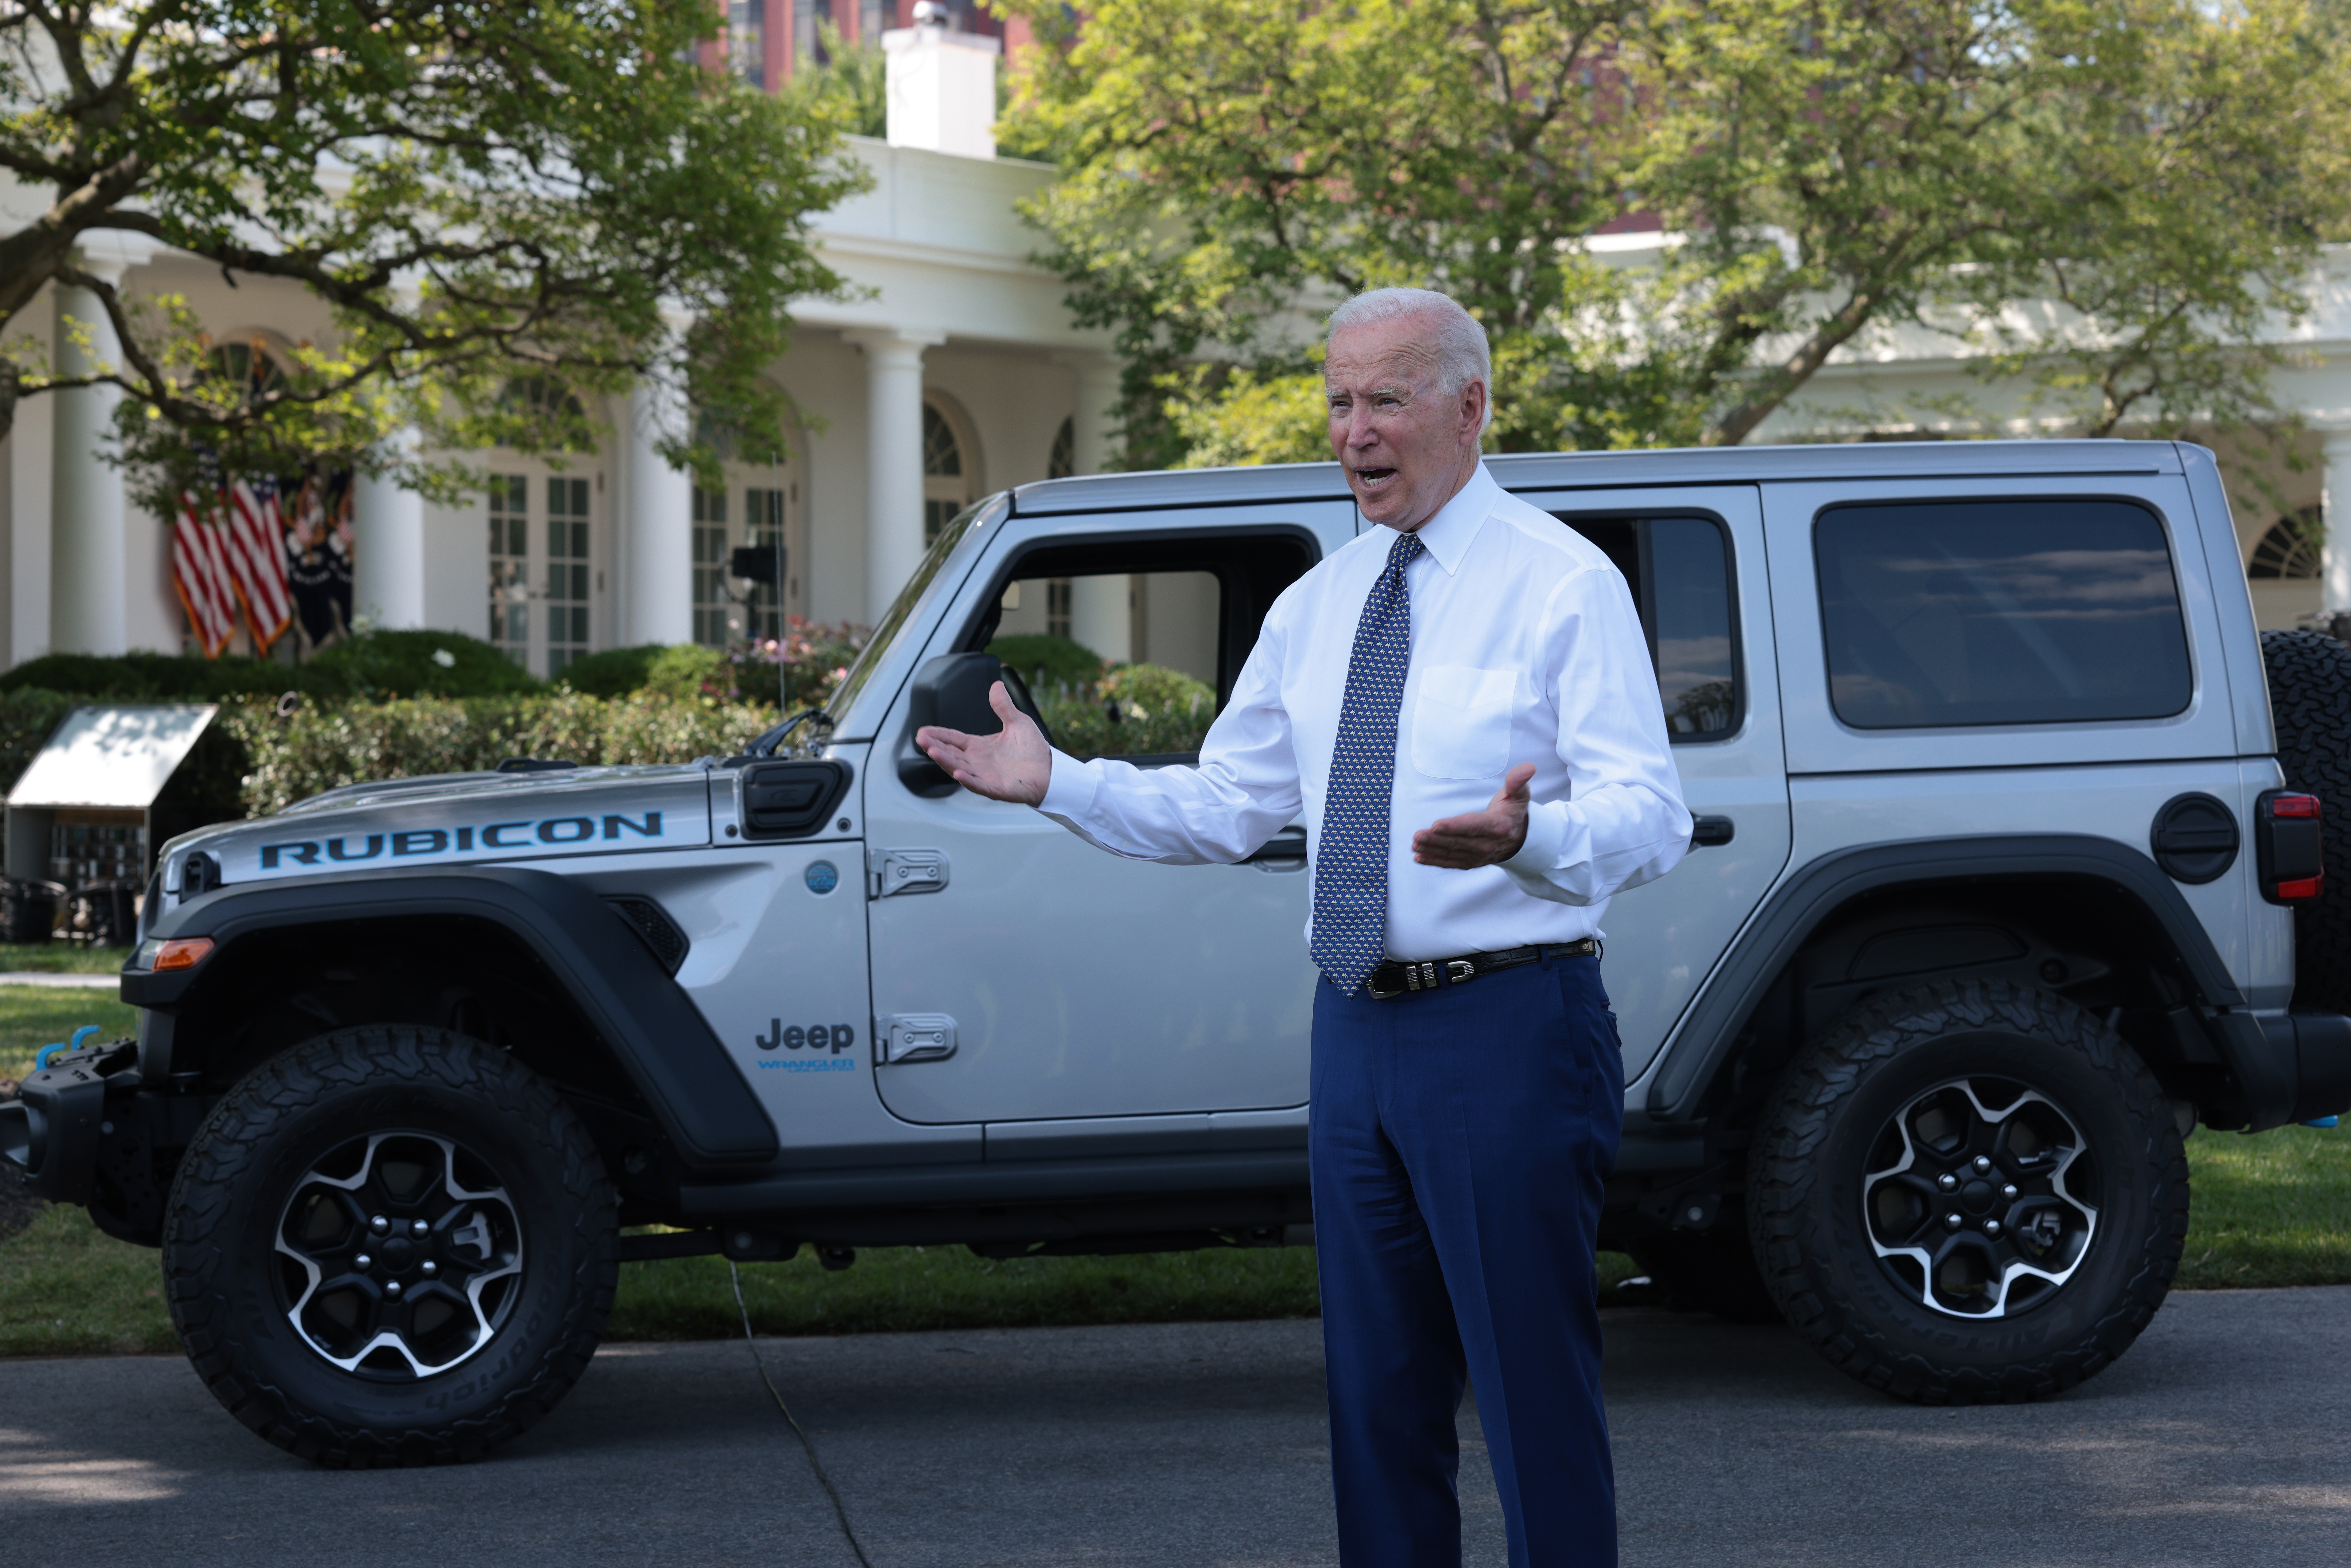 President Joe Biden answers questions from reporters after driving a Jeep around the White House on Thursday. (Win McNamee/Getty Images)